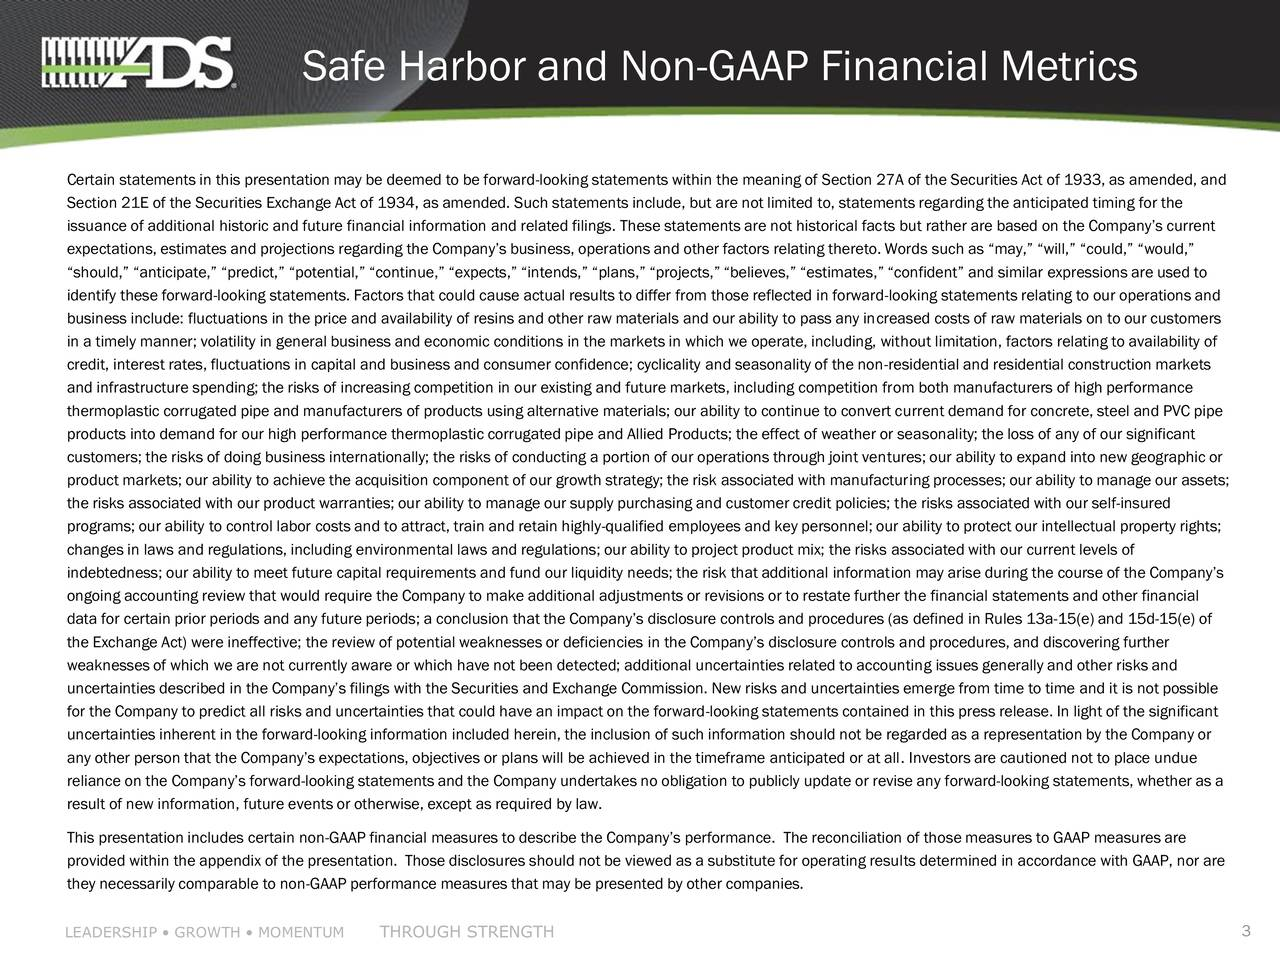 Certain statements in this presentation may be deemed to be forward-looking statements within the meaning of Section 27A of the Securities Act of 1933, as amended, and Section 21E of the Securities Exchange Act of 1934, as amended. Such statements include, but are not limited to, statements regarding the anticipated timing for the issuance of additional historic and future financial information and related filings. These statements are not historical facts but rather are based on the Companys current expectations, estimates and projections regarding the Companys business, operations and other factors relating thereto. Words such as may, will, could, would, should, anticipate, predict, potential, continue, expects, intends, plans, projects, believes, estimates, confident and similar expressions are used to identify these forward-looking statements. Factors that could cause actual results to differ from those reflected in forward-looking statements relating to our operations and business include: fluctuations in the price and availability of resins and other raw materials and our ability to pass any increased costs of raw materials on to our customers in a timely manner; volatility in general business and economic conditions in the markets in which we operate, including, without limitation, factors relating to availability of credit, interest rates, fluctuations in capital and business and consumer confidence; cyclicality and seasonality of the non-residential and residential construction markets and infrastructure spending; the risks of increasing competition in our existing and future markets, including competition from both manufacturers of high performance thermoplastic corrugated pipe and manufacturers of products using alternative materials; our ability to continue to convert current demand for concrete, steel and PVC pipe products into demand for our high performance thermoplastic corrugated pipe and Allied Products; the effect of weather or seasonality; the lo